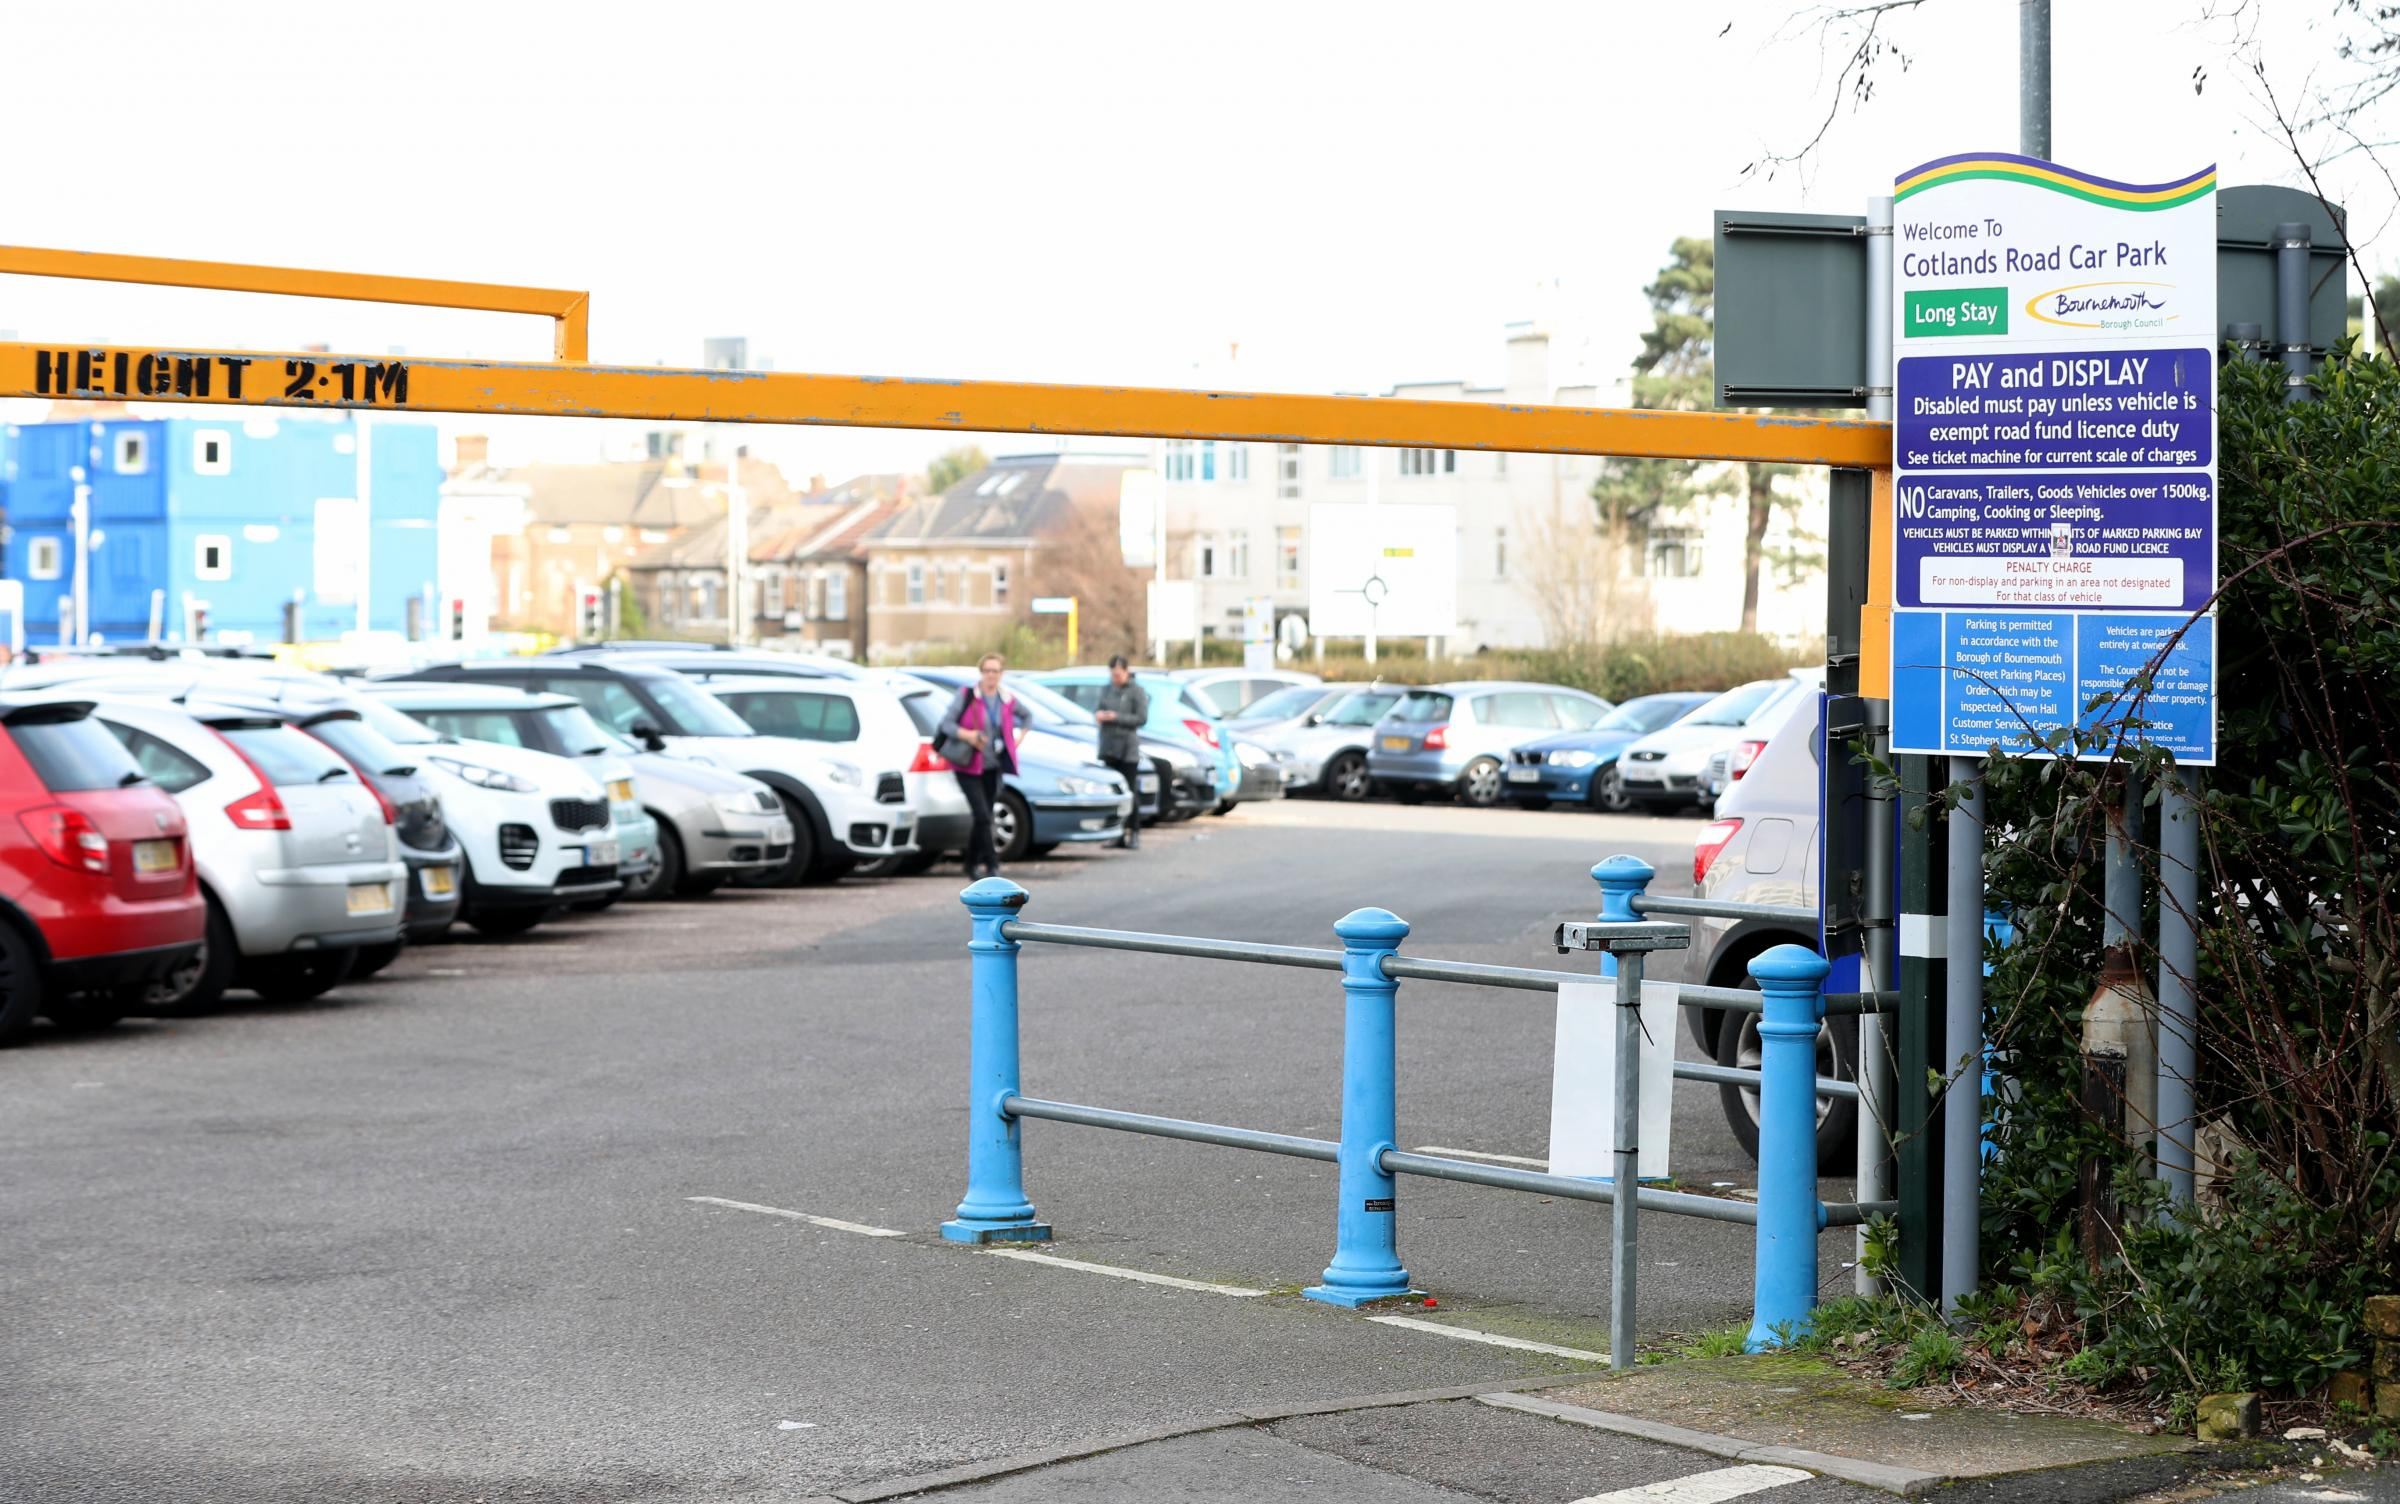 Flats plan for the Cotlands Road car park in Bournemouth